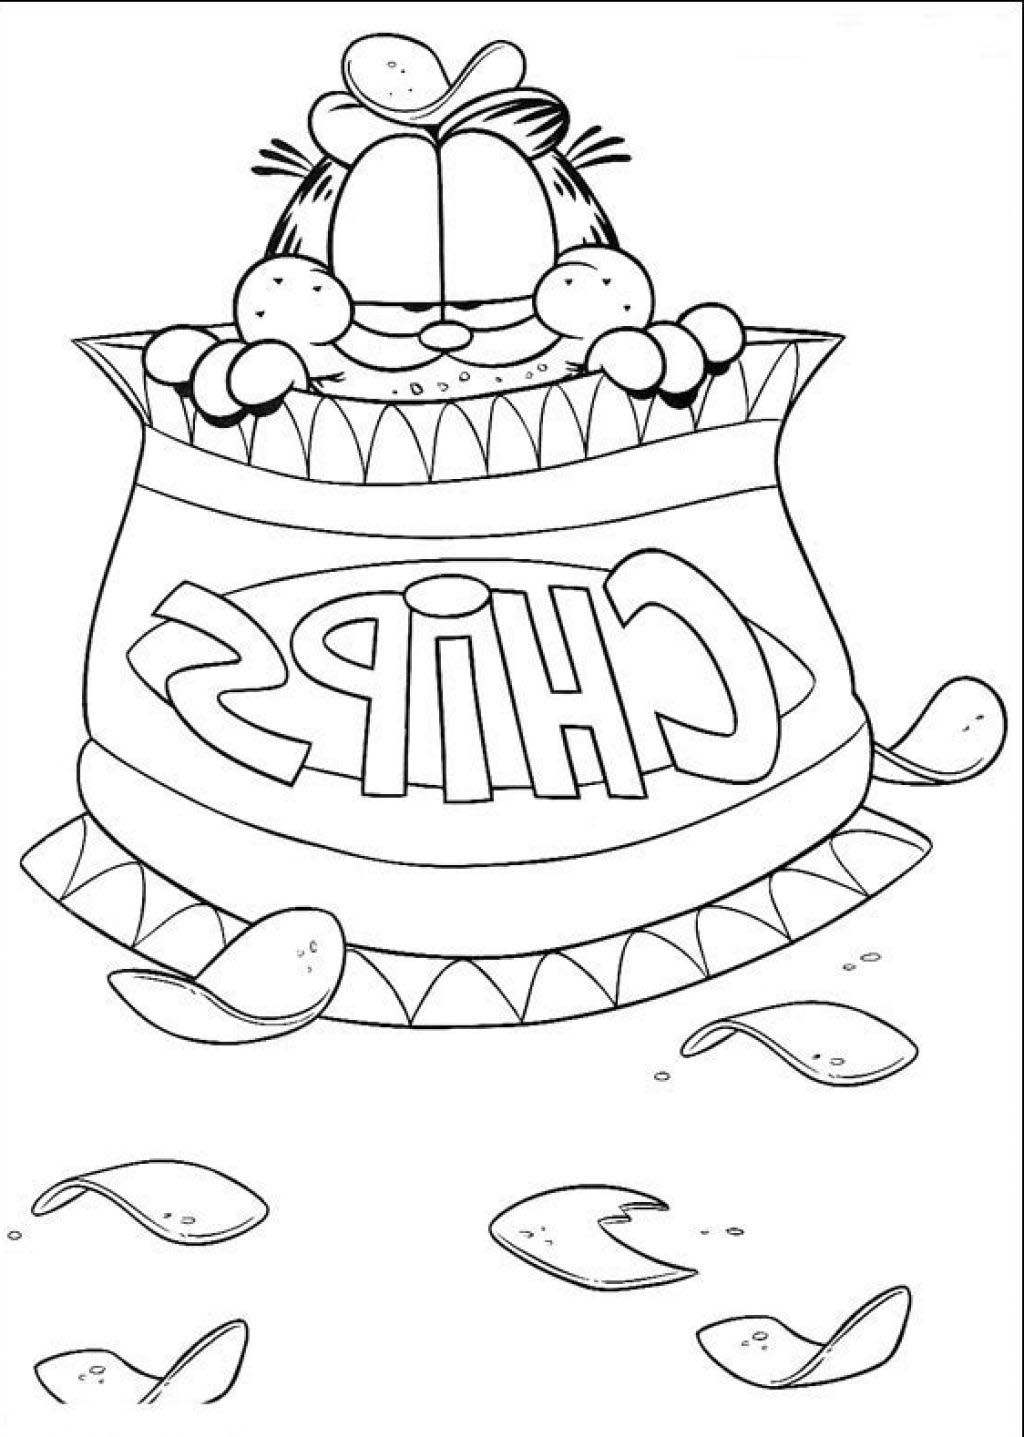 Free Easy Garfield Coloring Pages Characters printable